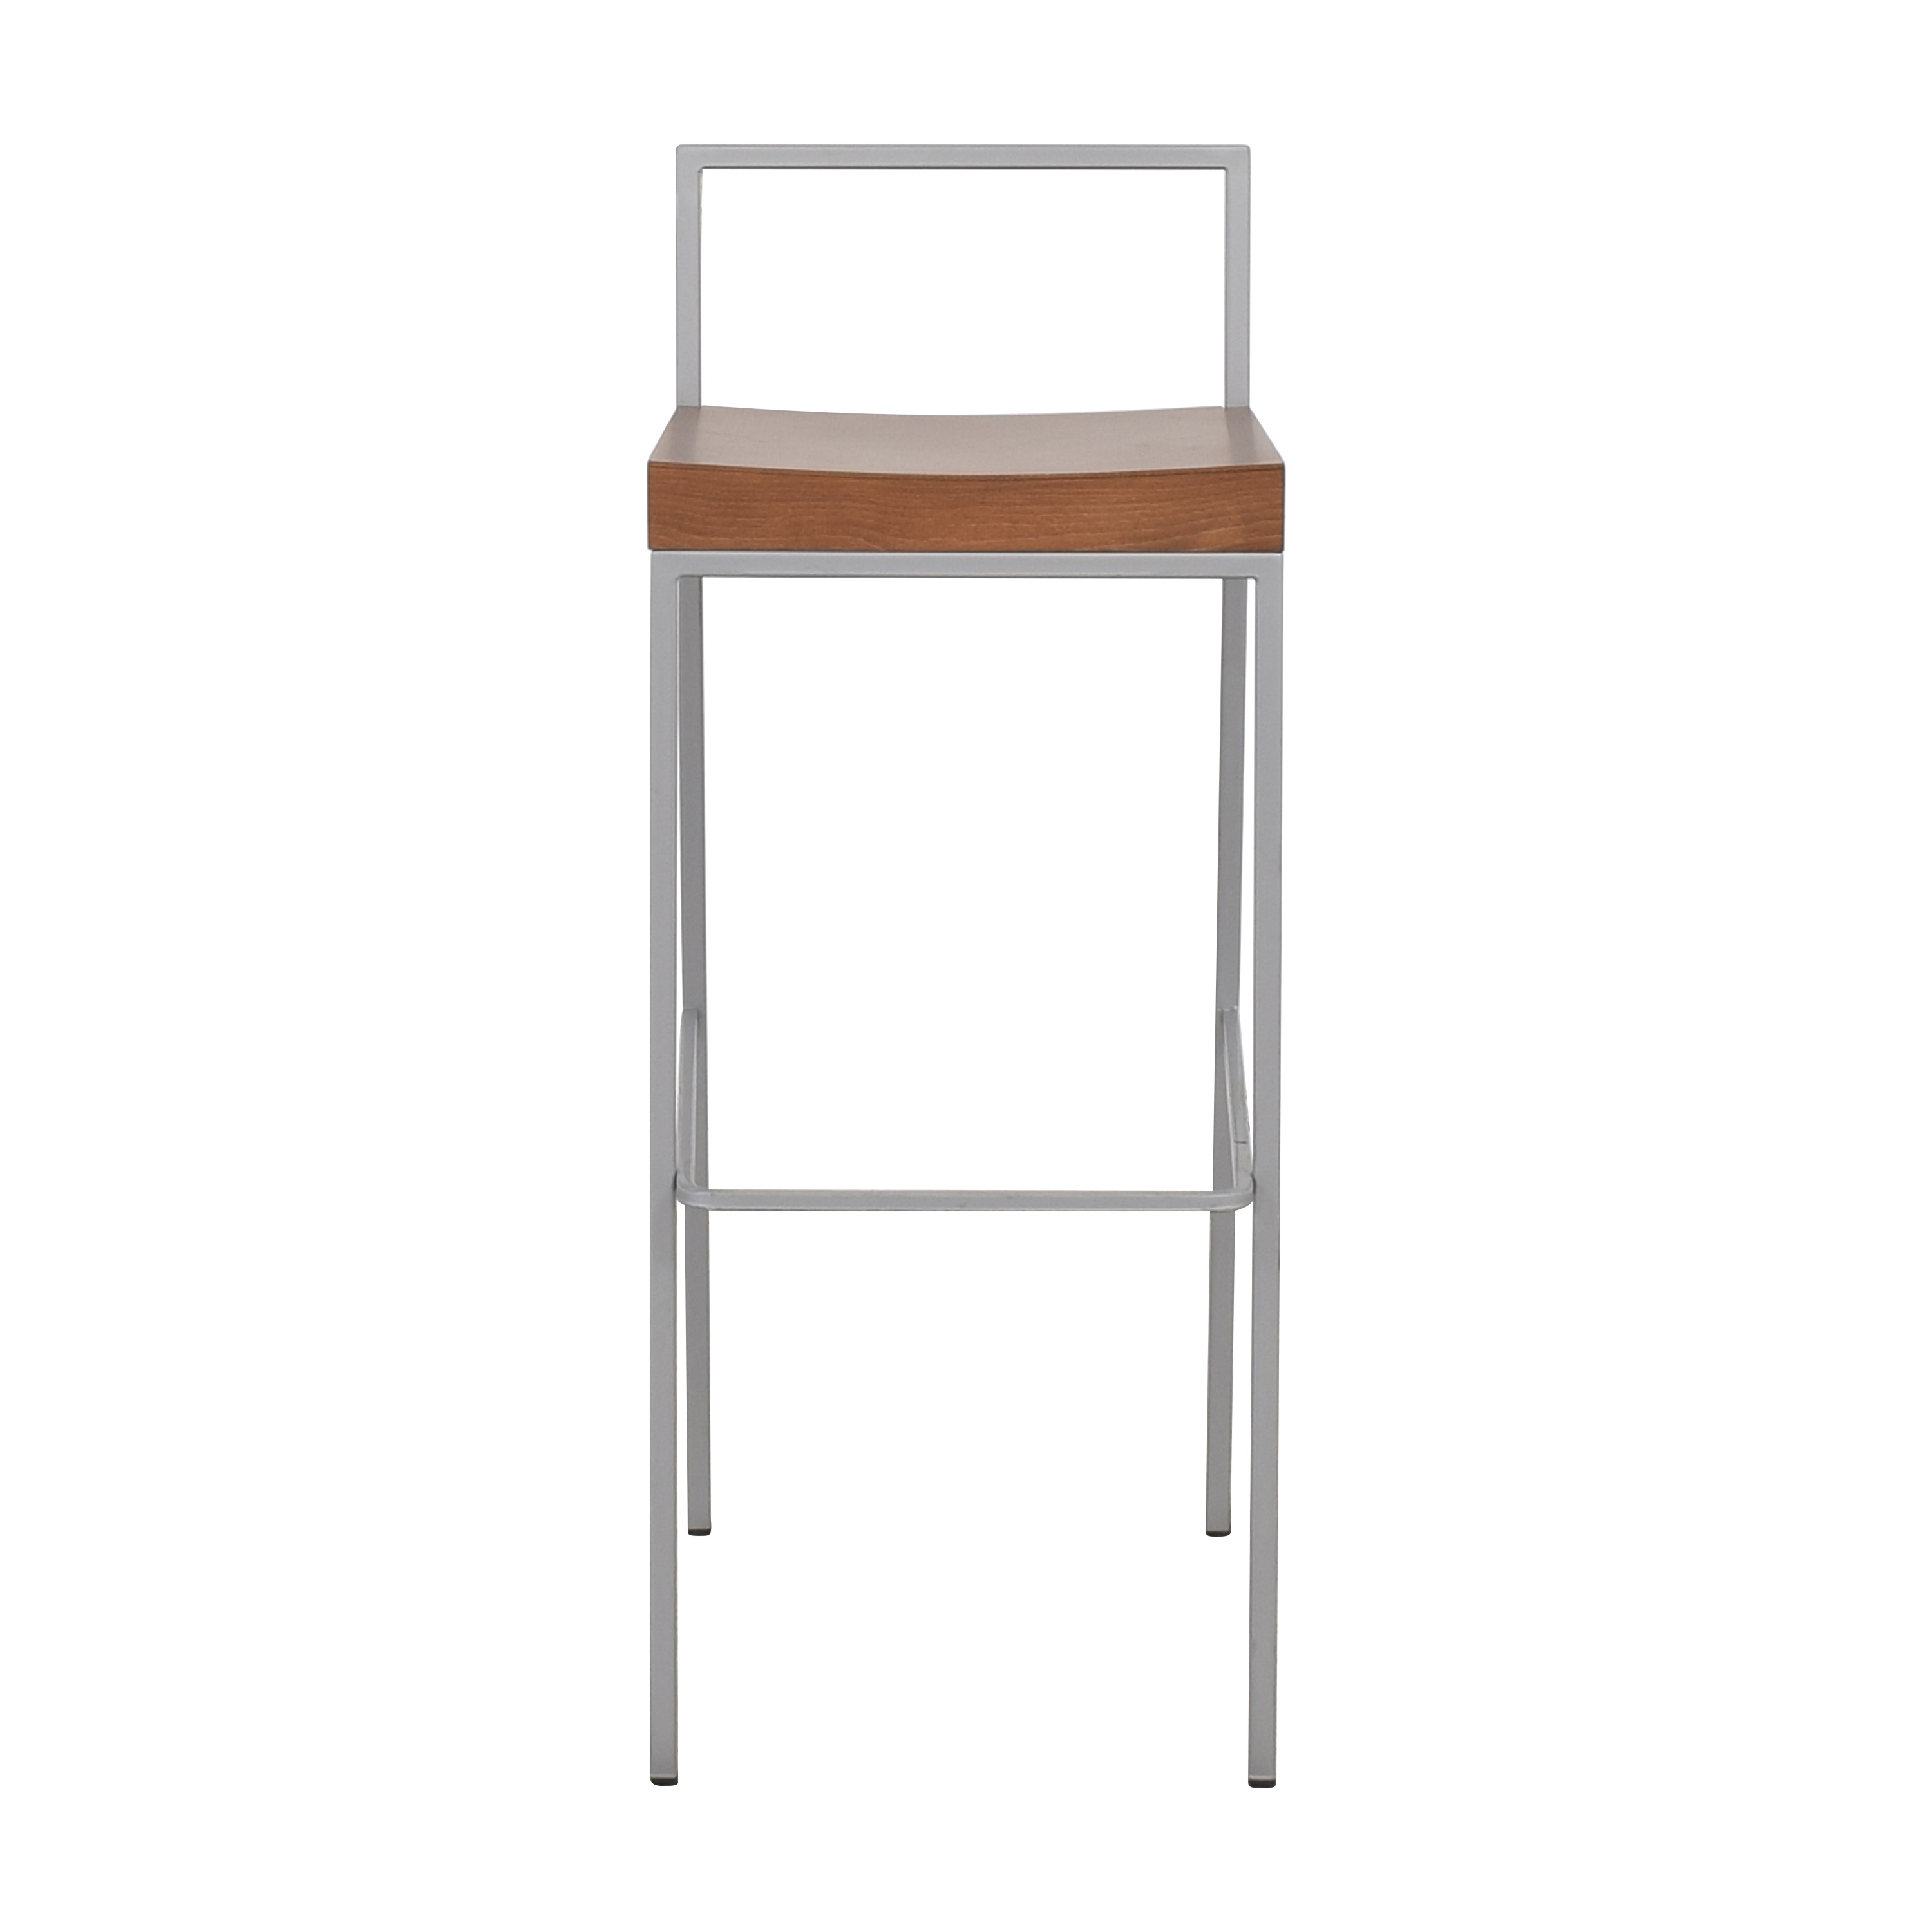 Bross Bross Master Contemporary Bar Stool Chairs